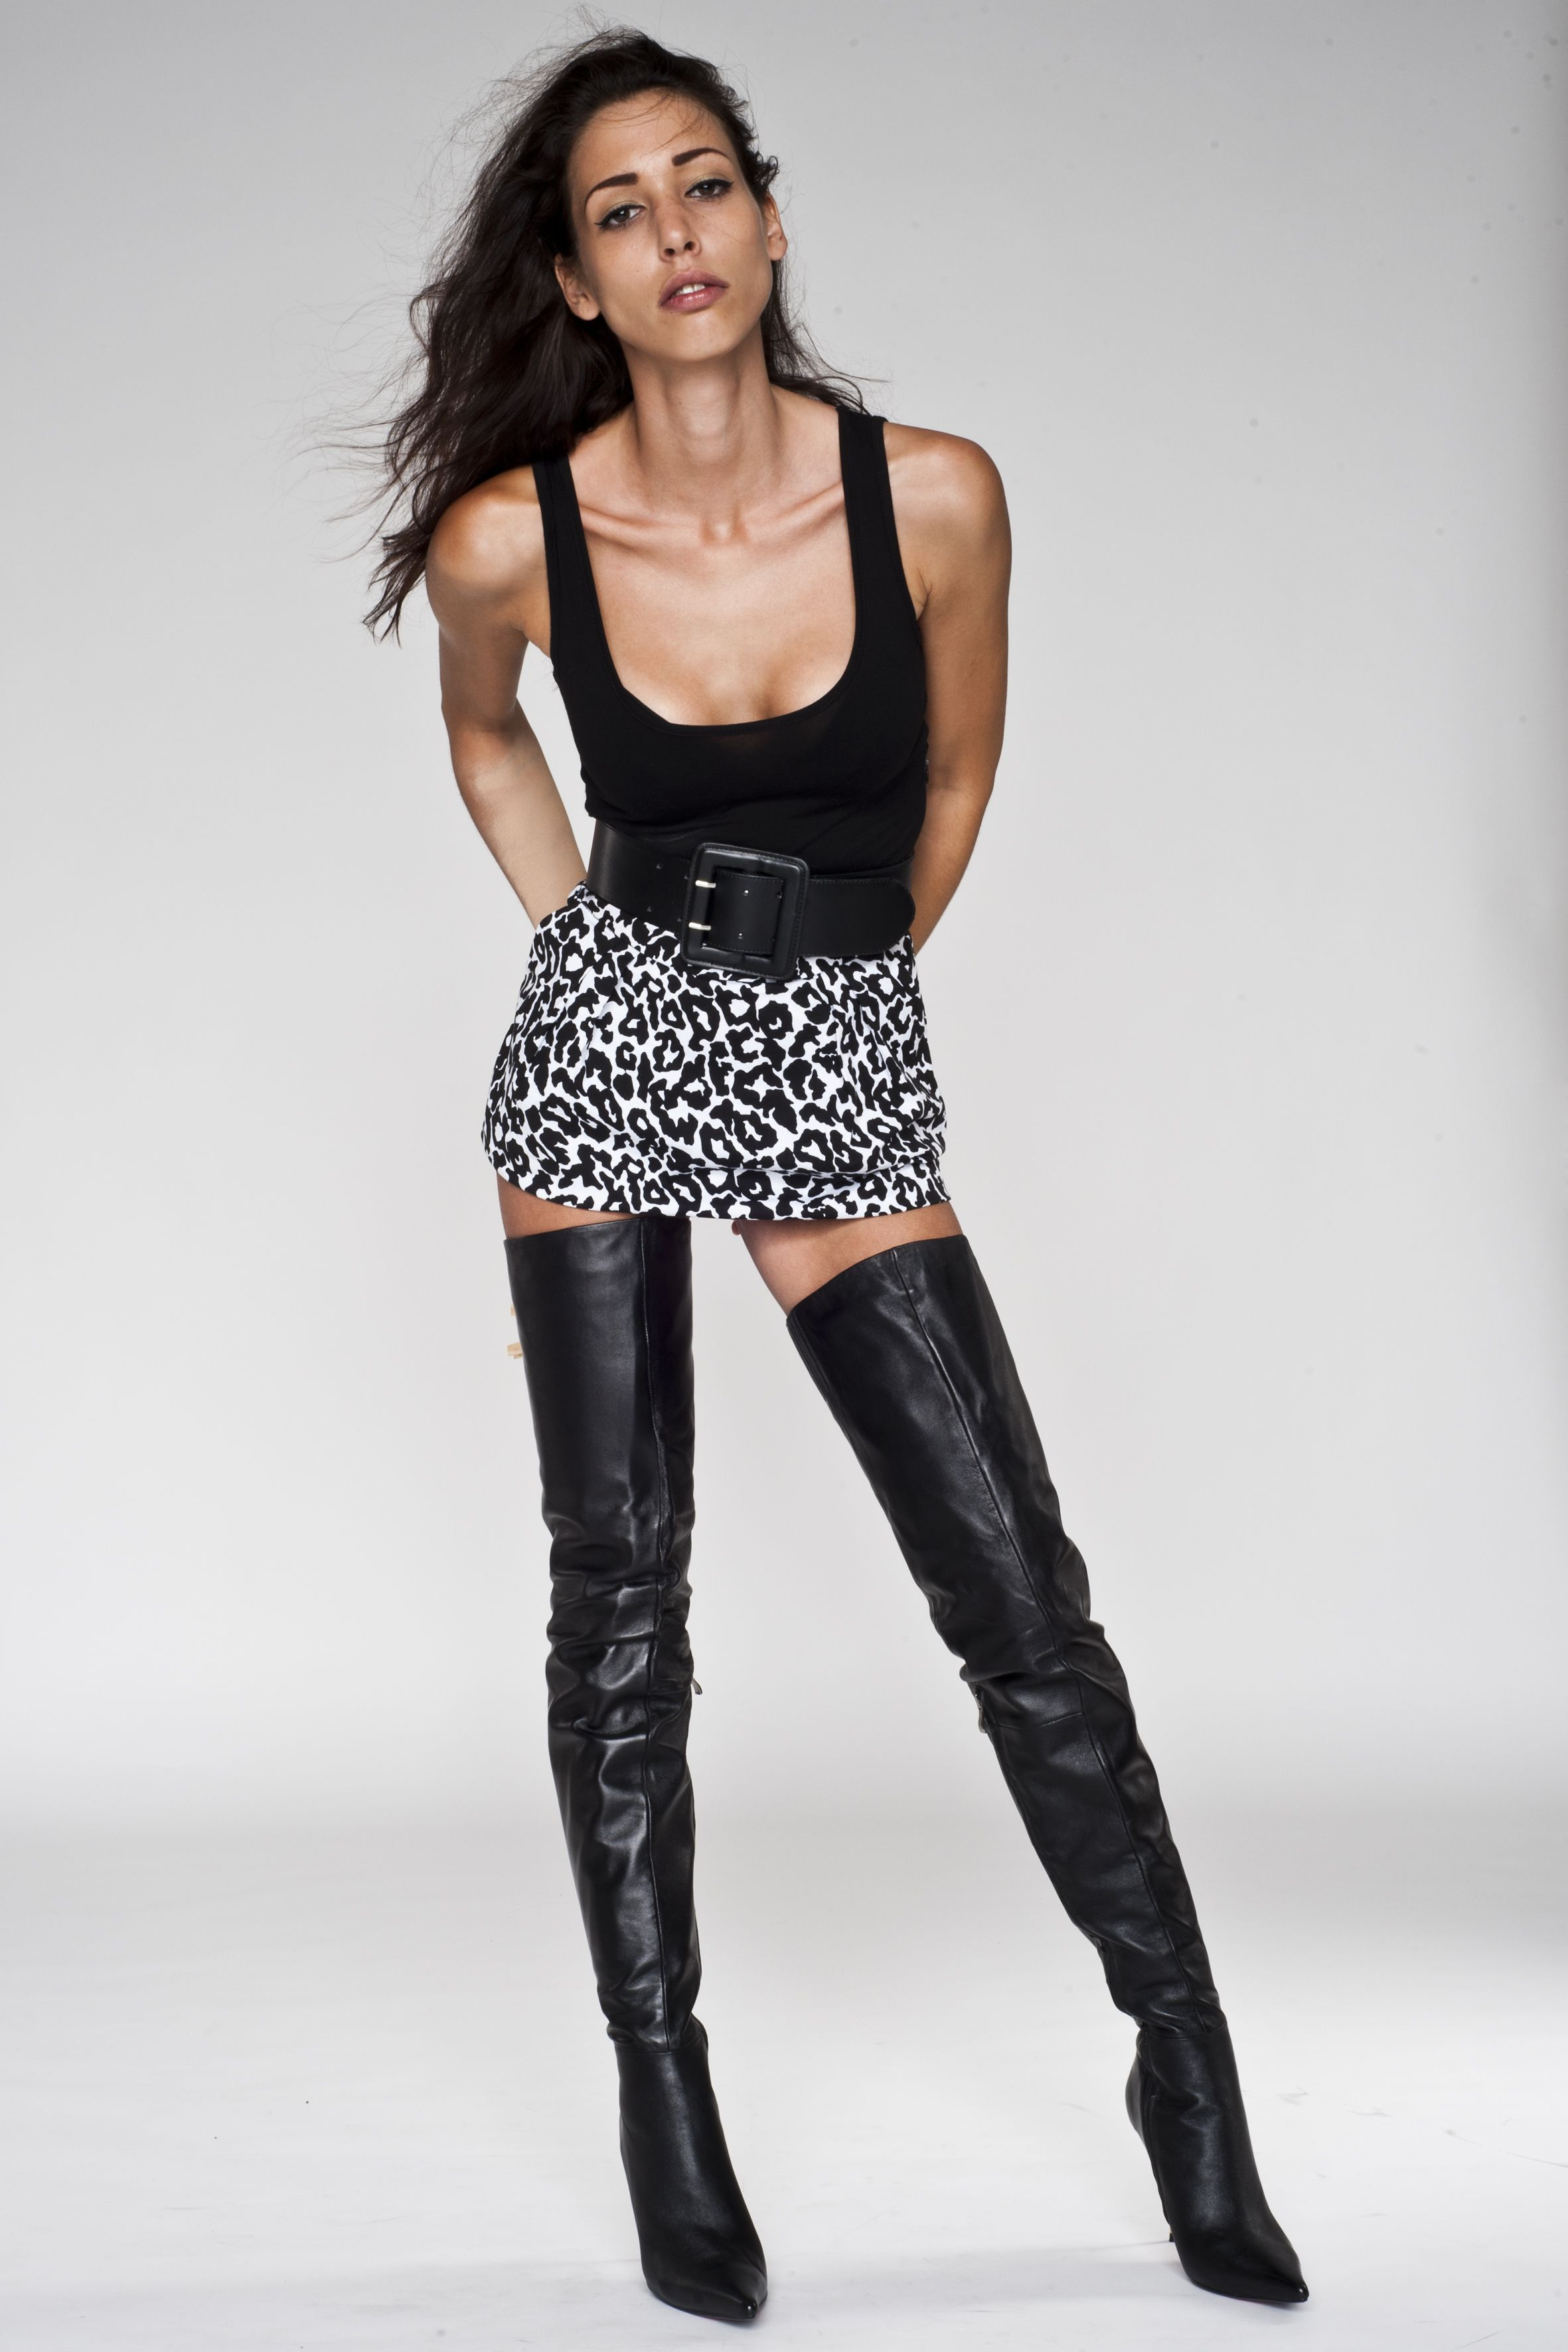 Woman in black leather boots